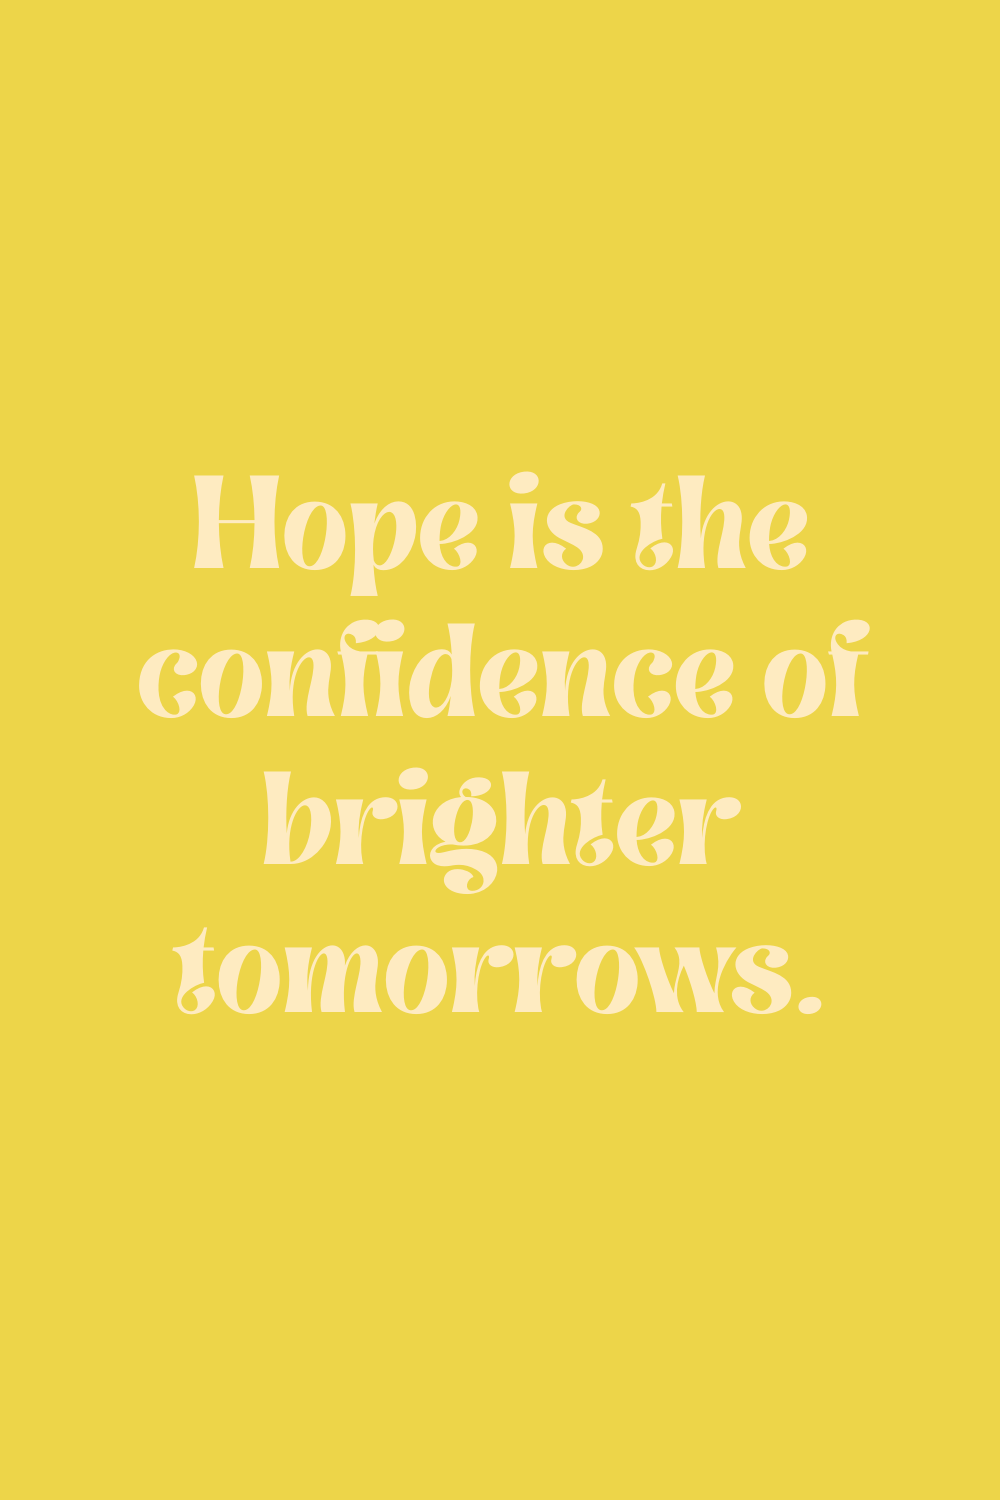 Christian Quotes on Hope For Confidence